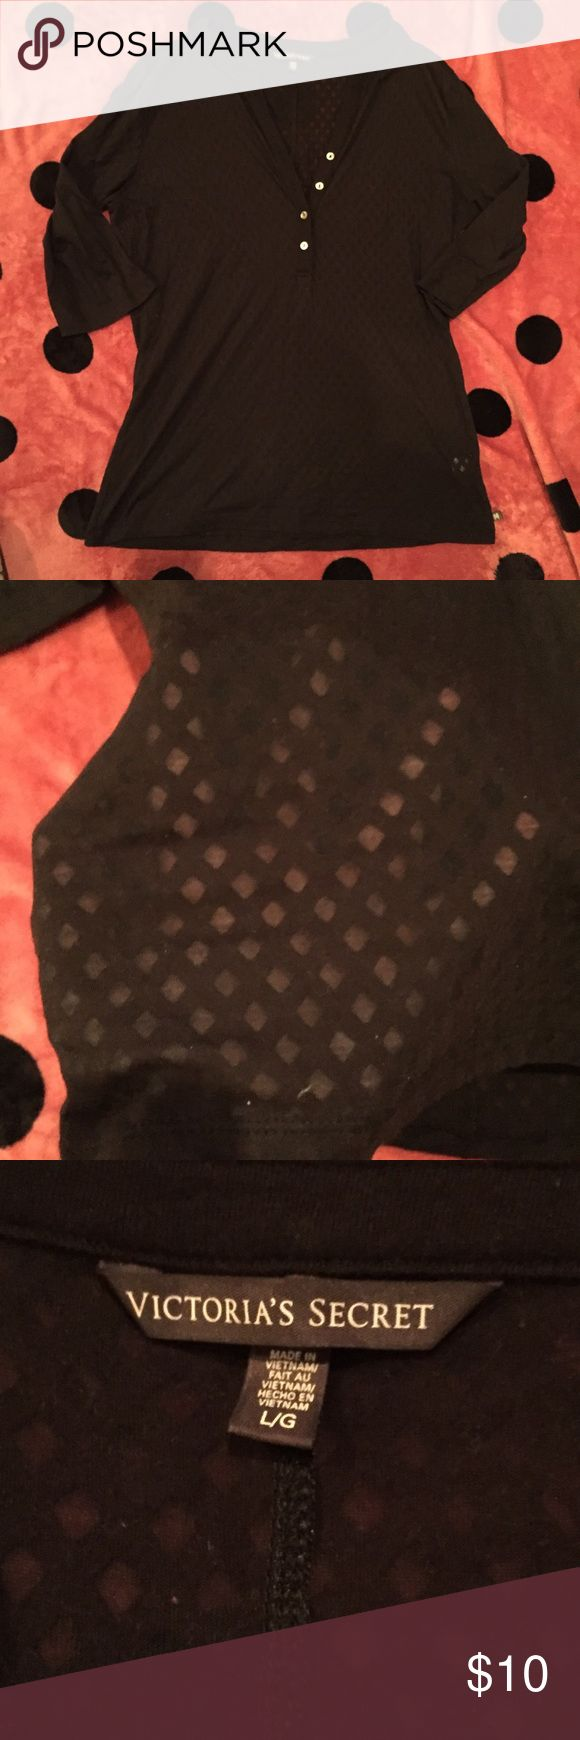 Victoria's Secret Black Burnout 3/4 Henley Shirt In excellent used condition from Victoria's Secret. This is a black 3/4 sleeve Henley t-shirt with a diamond burnout pattern. No fabric wear and no holes or stains. Material is a very soft cotton.   Reasonable offers welcome and I do not trade. 15% discount on bundles of 2 items. Victoria's Secret Tops Tees - Long Sleeve